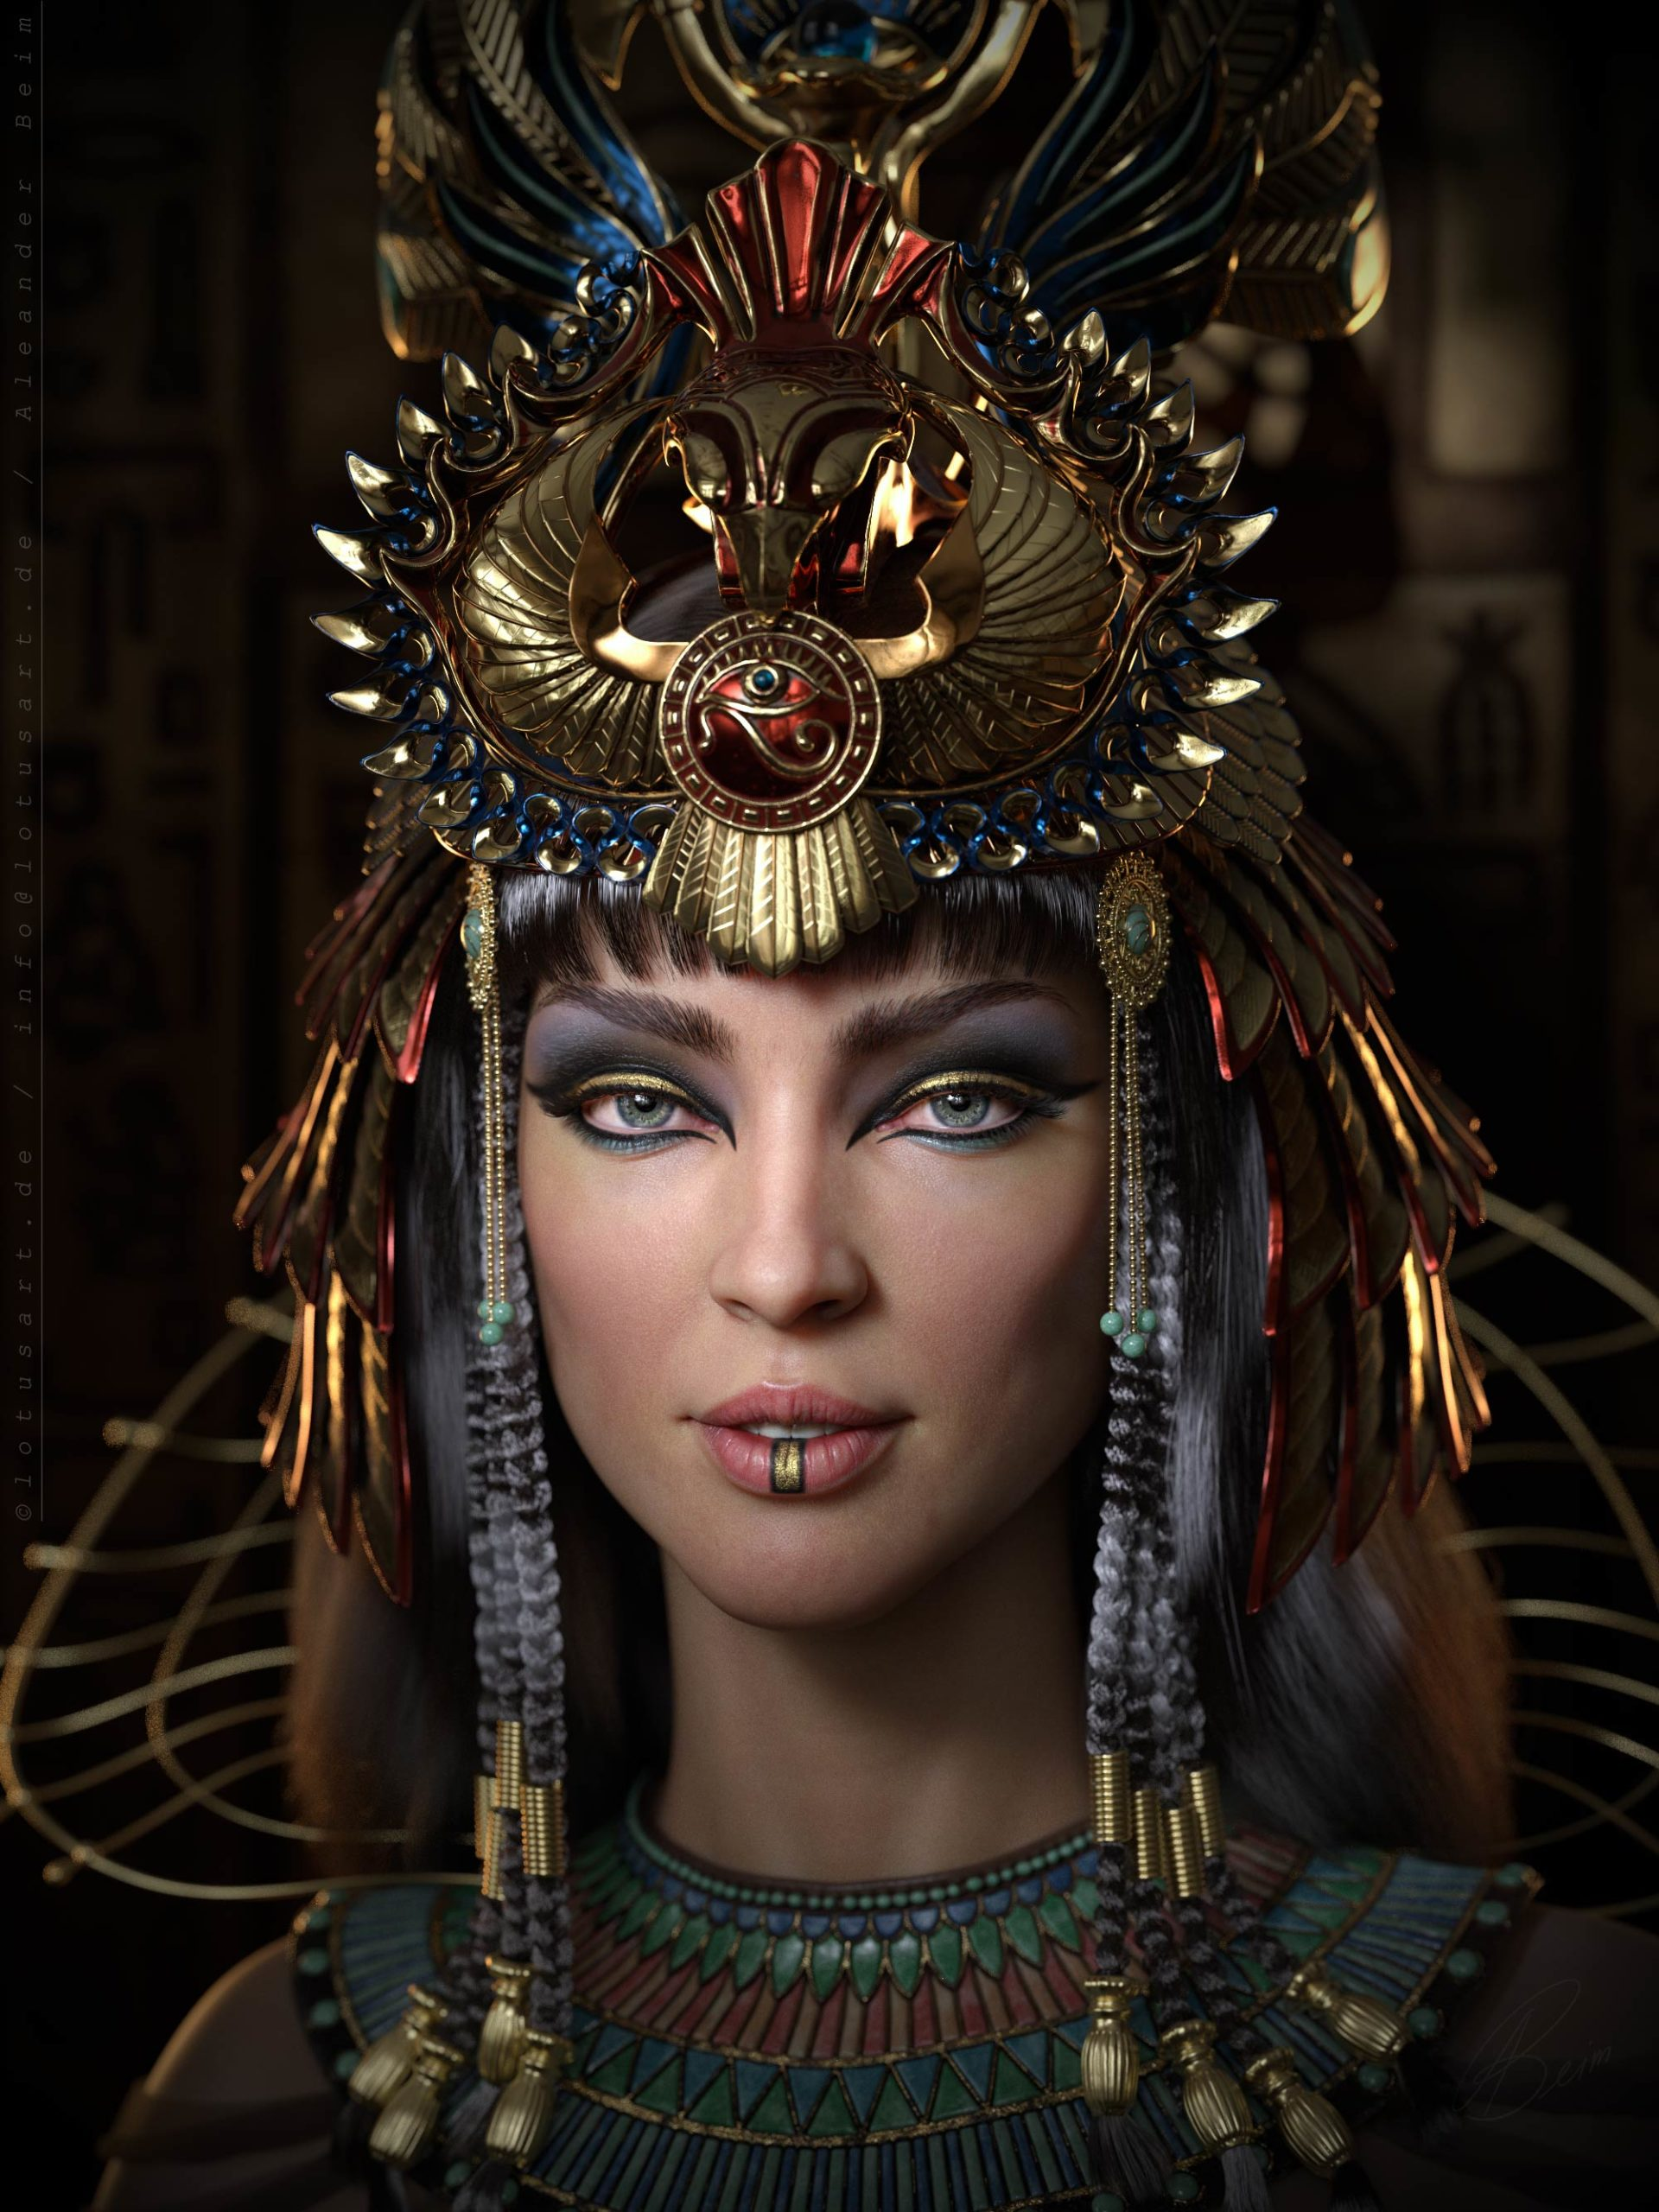 egyptian_queen_Cleopatra_Hatshepsut_Nofretete_3d_character_historical_figure_pharaoh_egypt_hight-scaled Egyptian queen 3D model